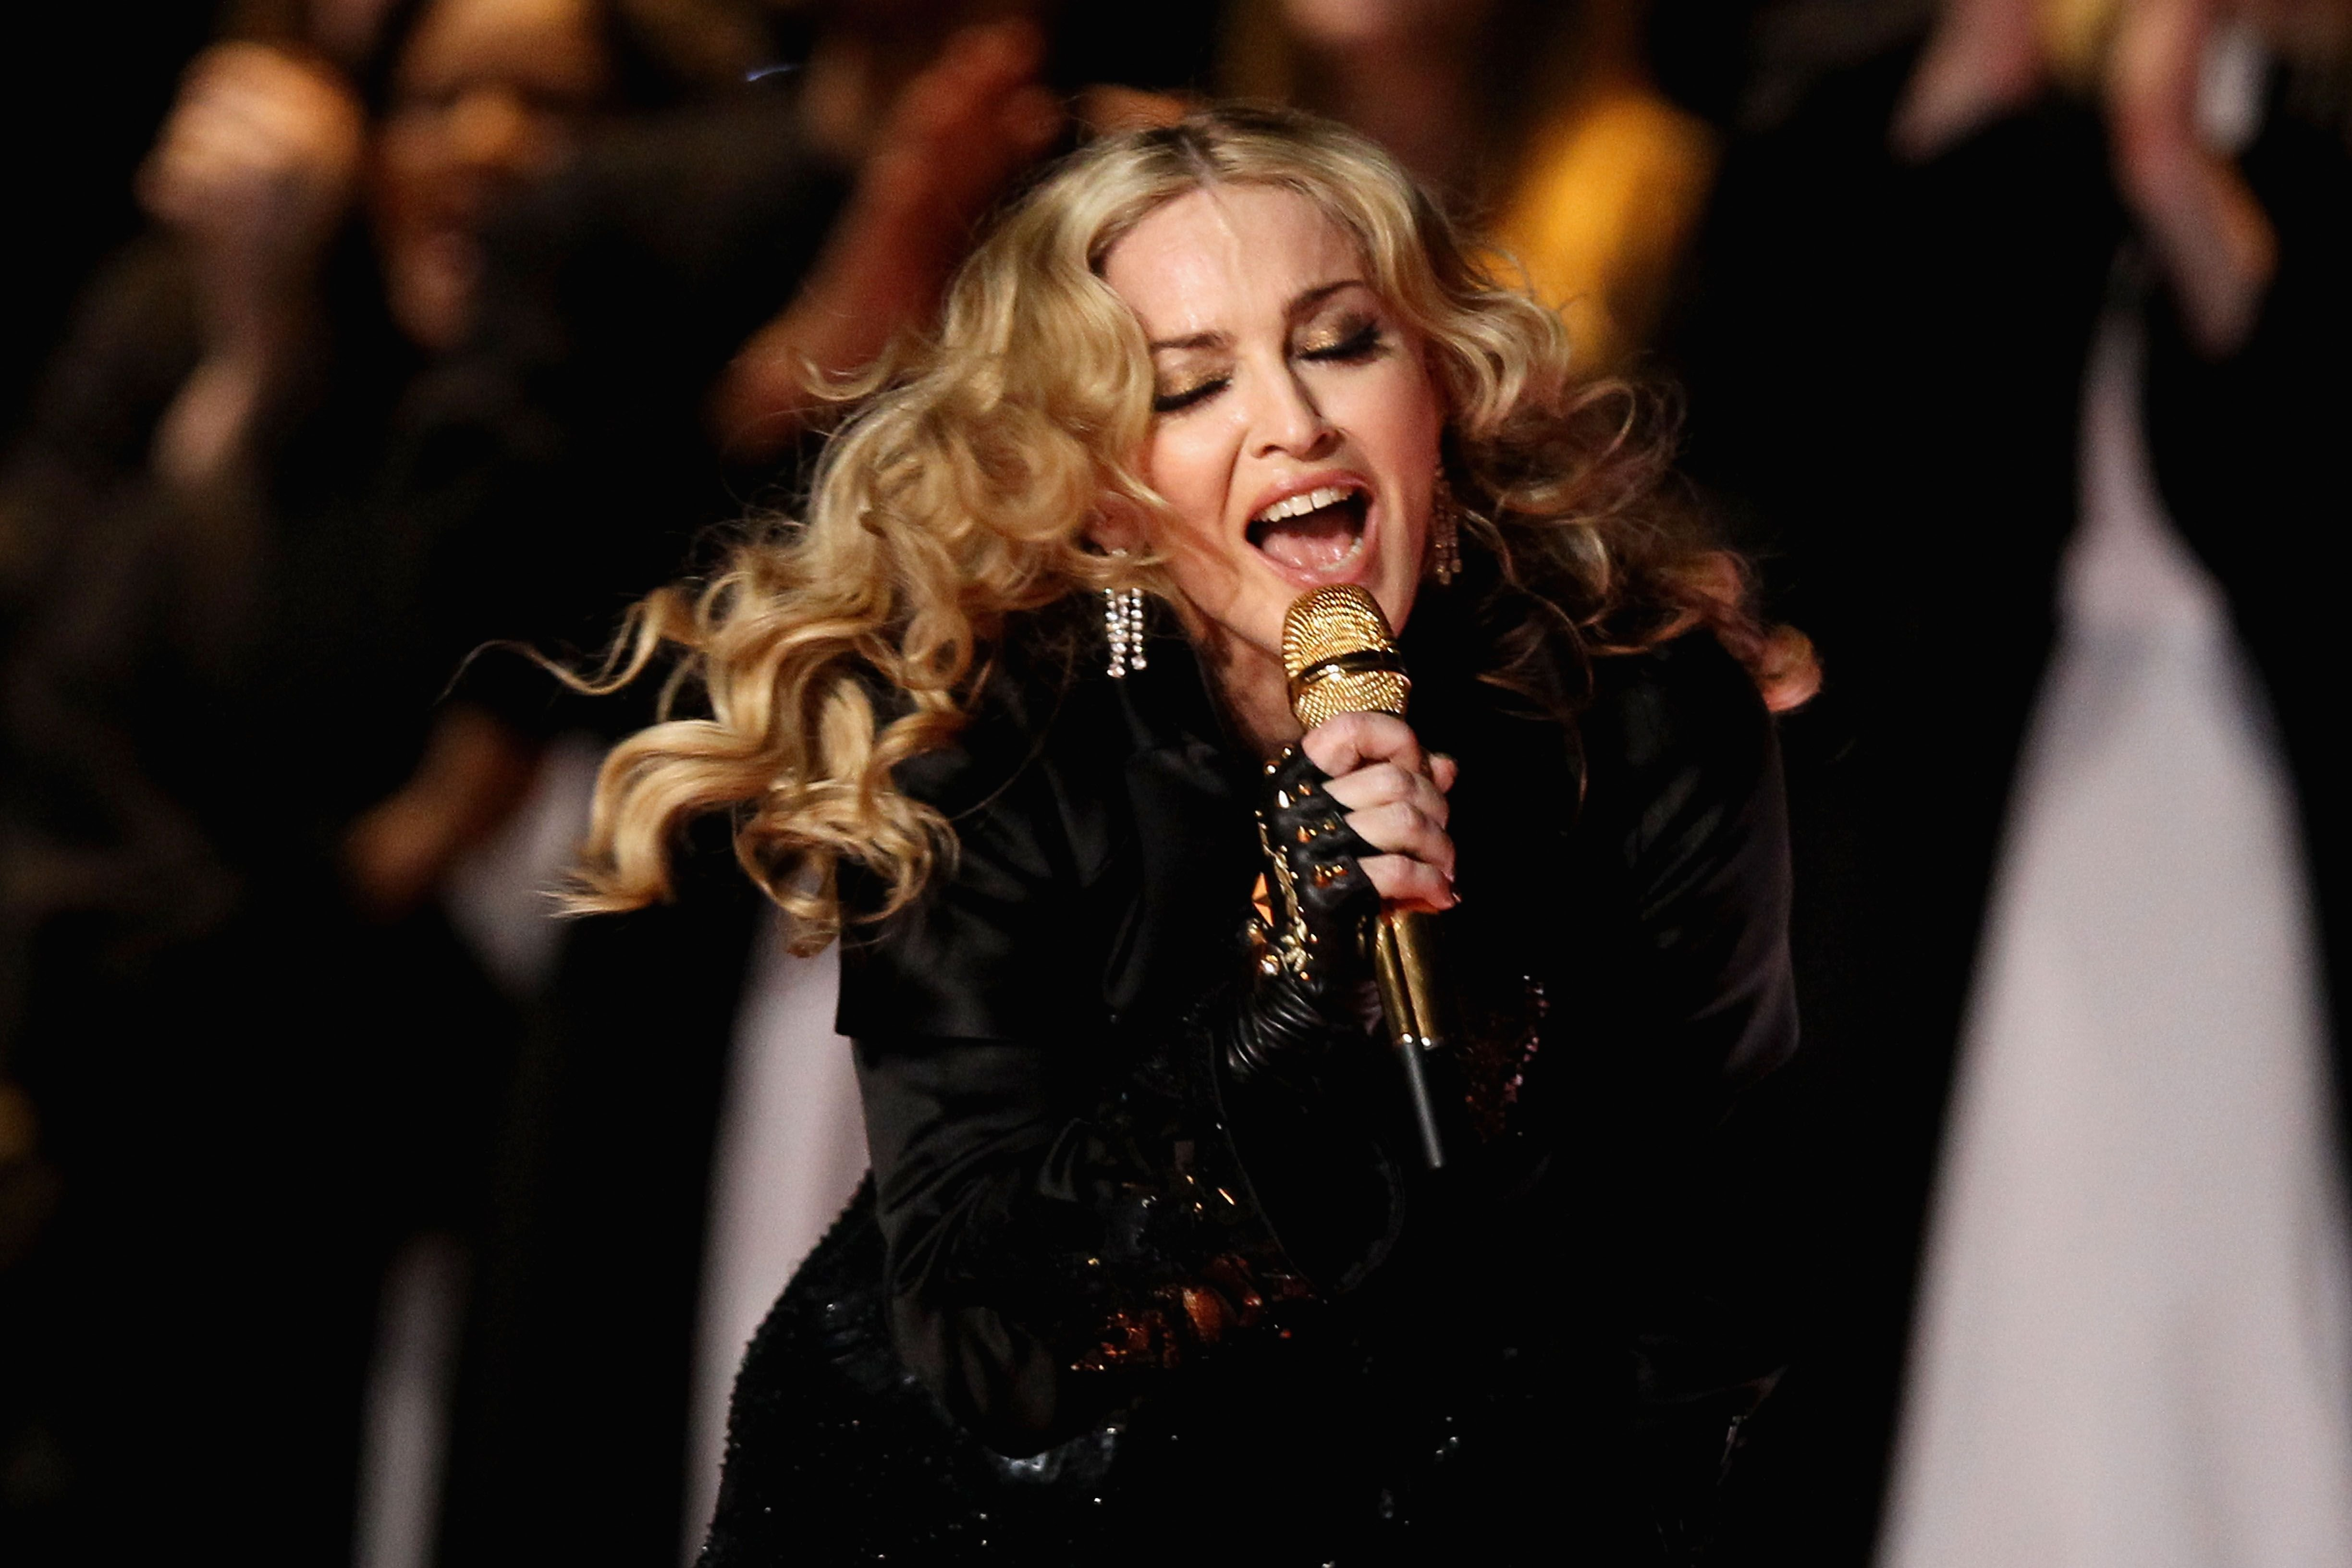 Madonna at the Bridgestone Super Bowl XLVI Halftime Show at Lucas Oil Stadium on February 5, 2012 in Indianapolis, Indiana | Photo: Getty Images